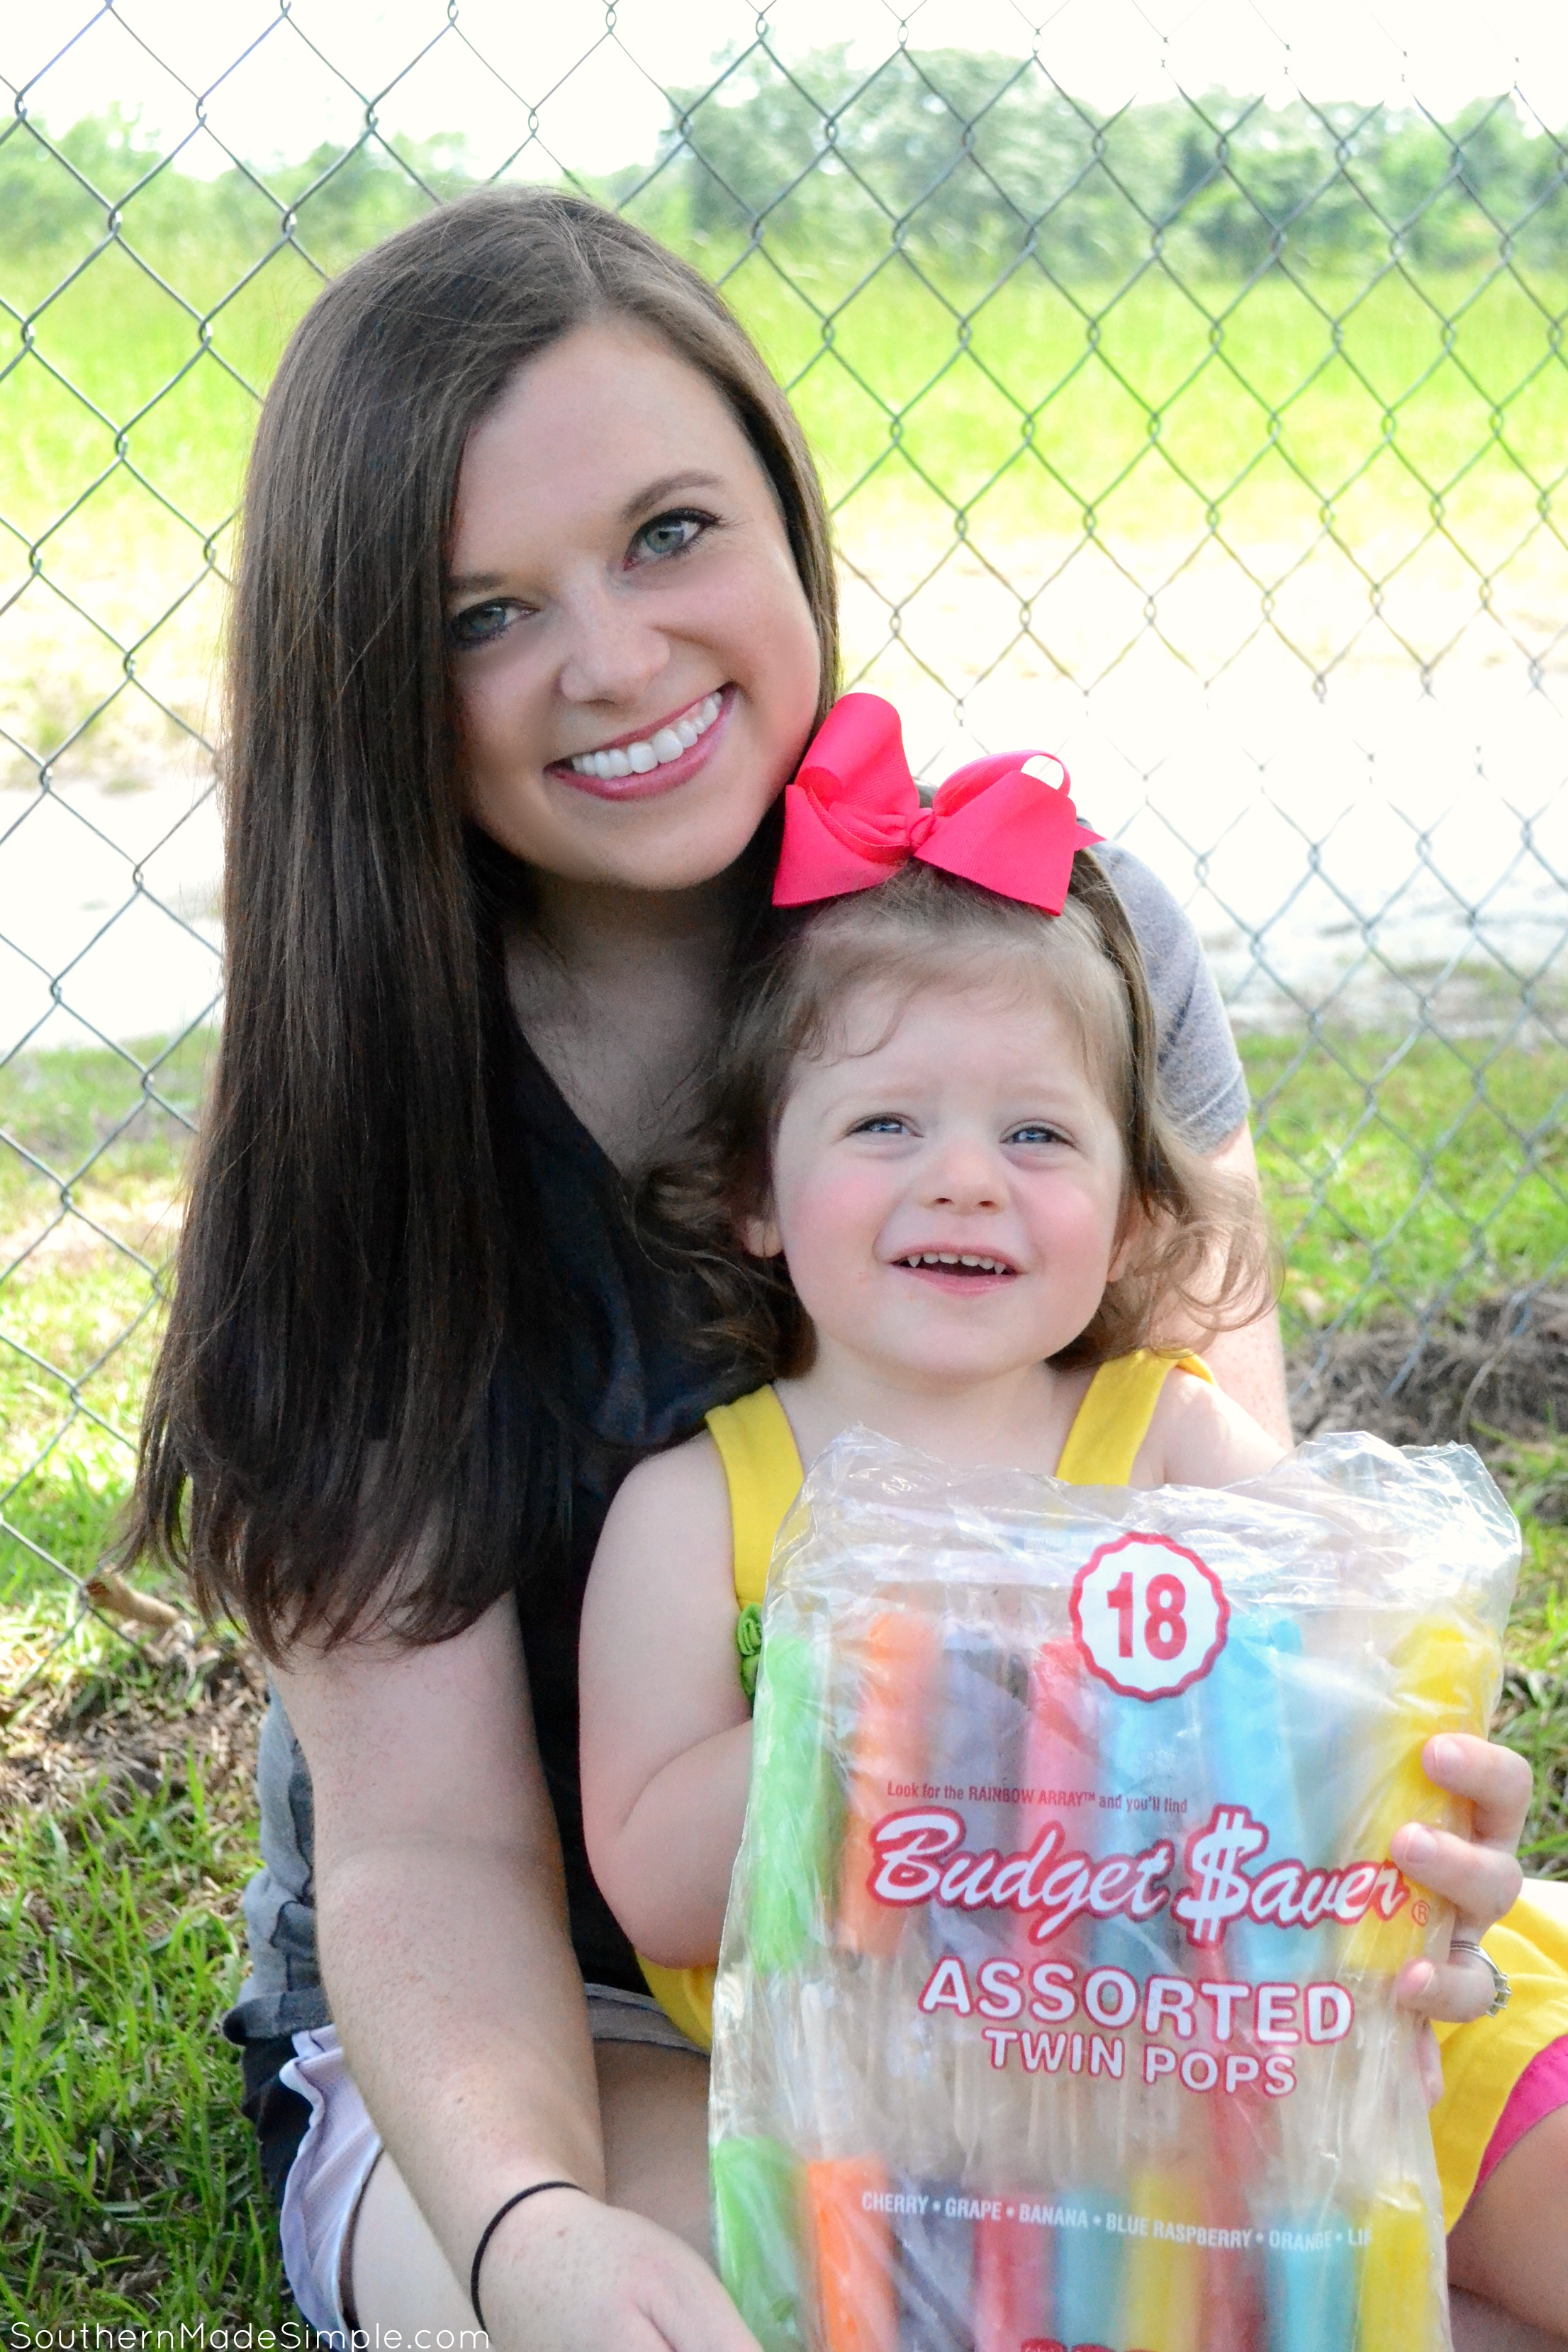 Creating Sweet Summer MOMents with Budget Saver Twin Pops #TwinPopsContest #IC #ad